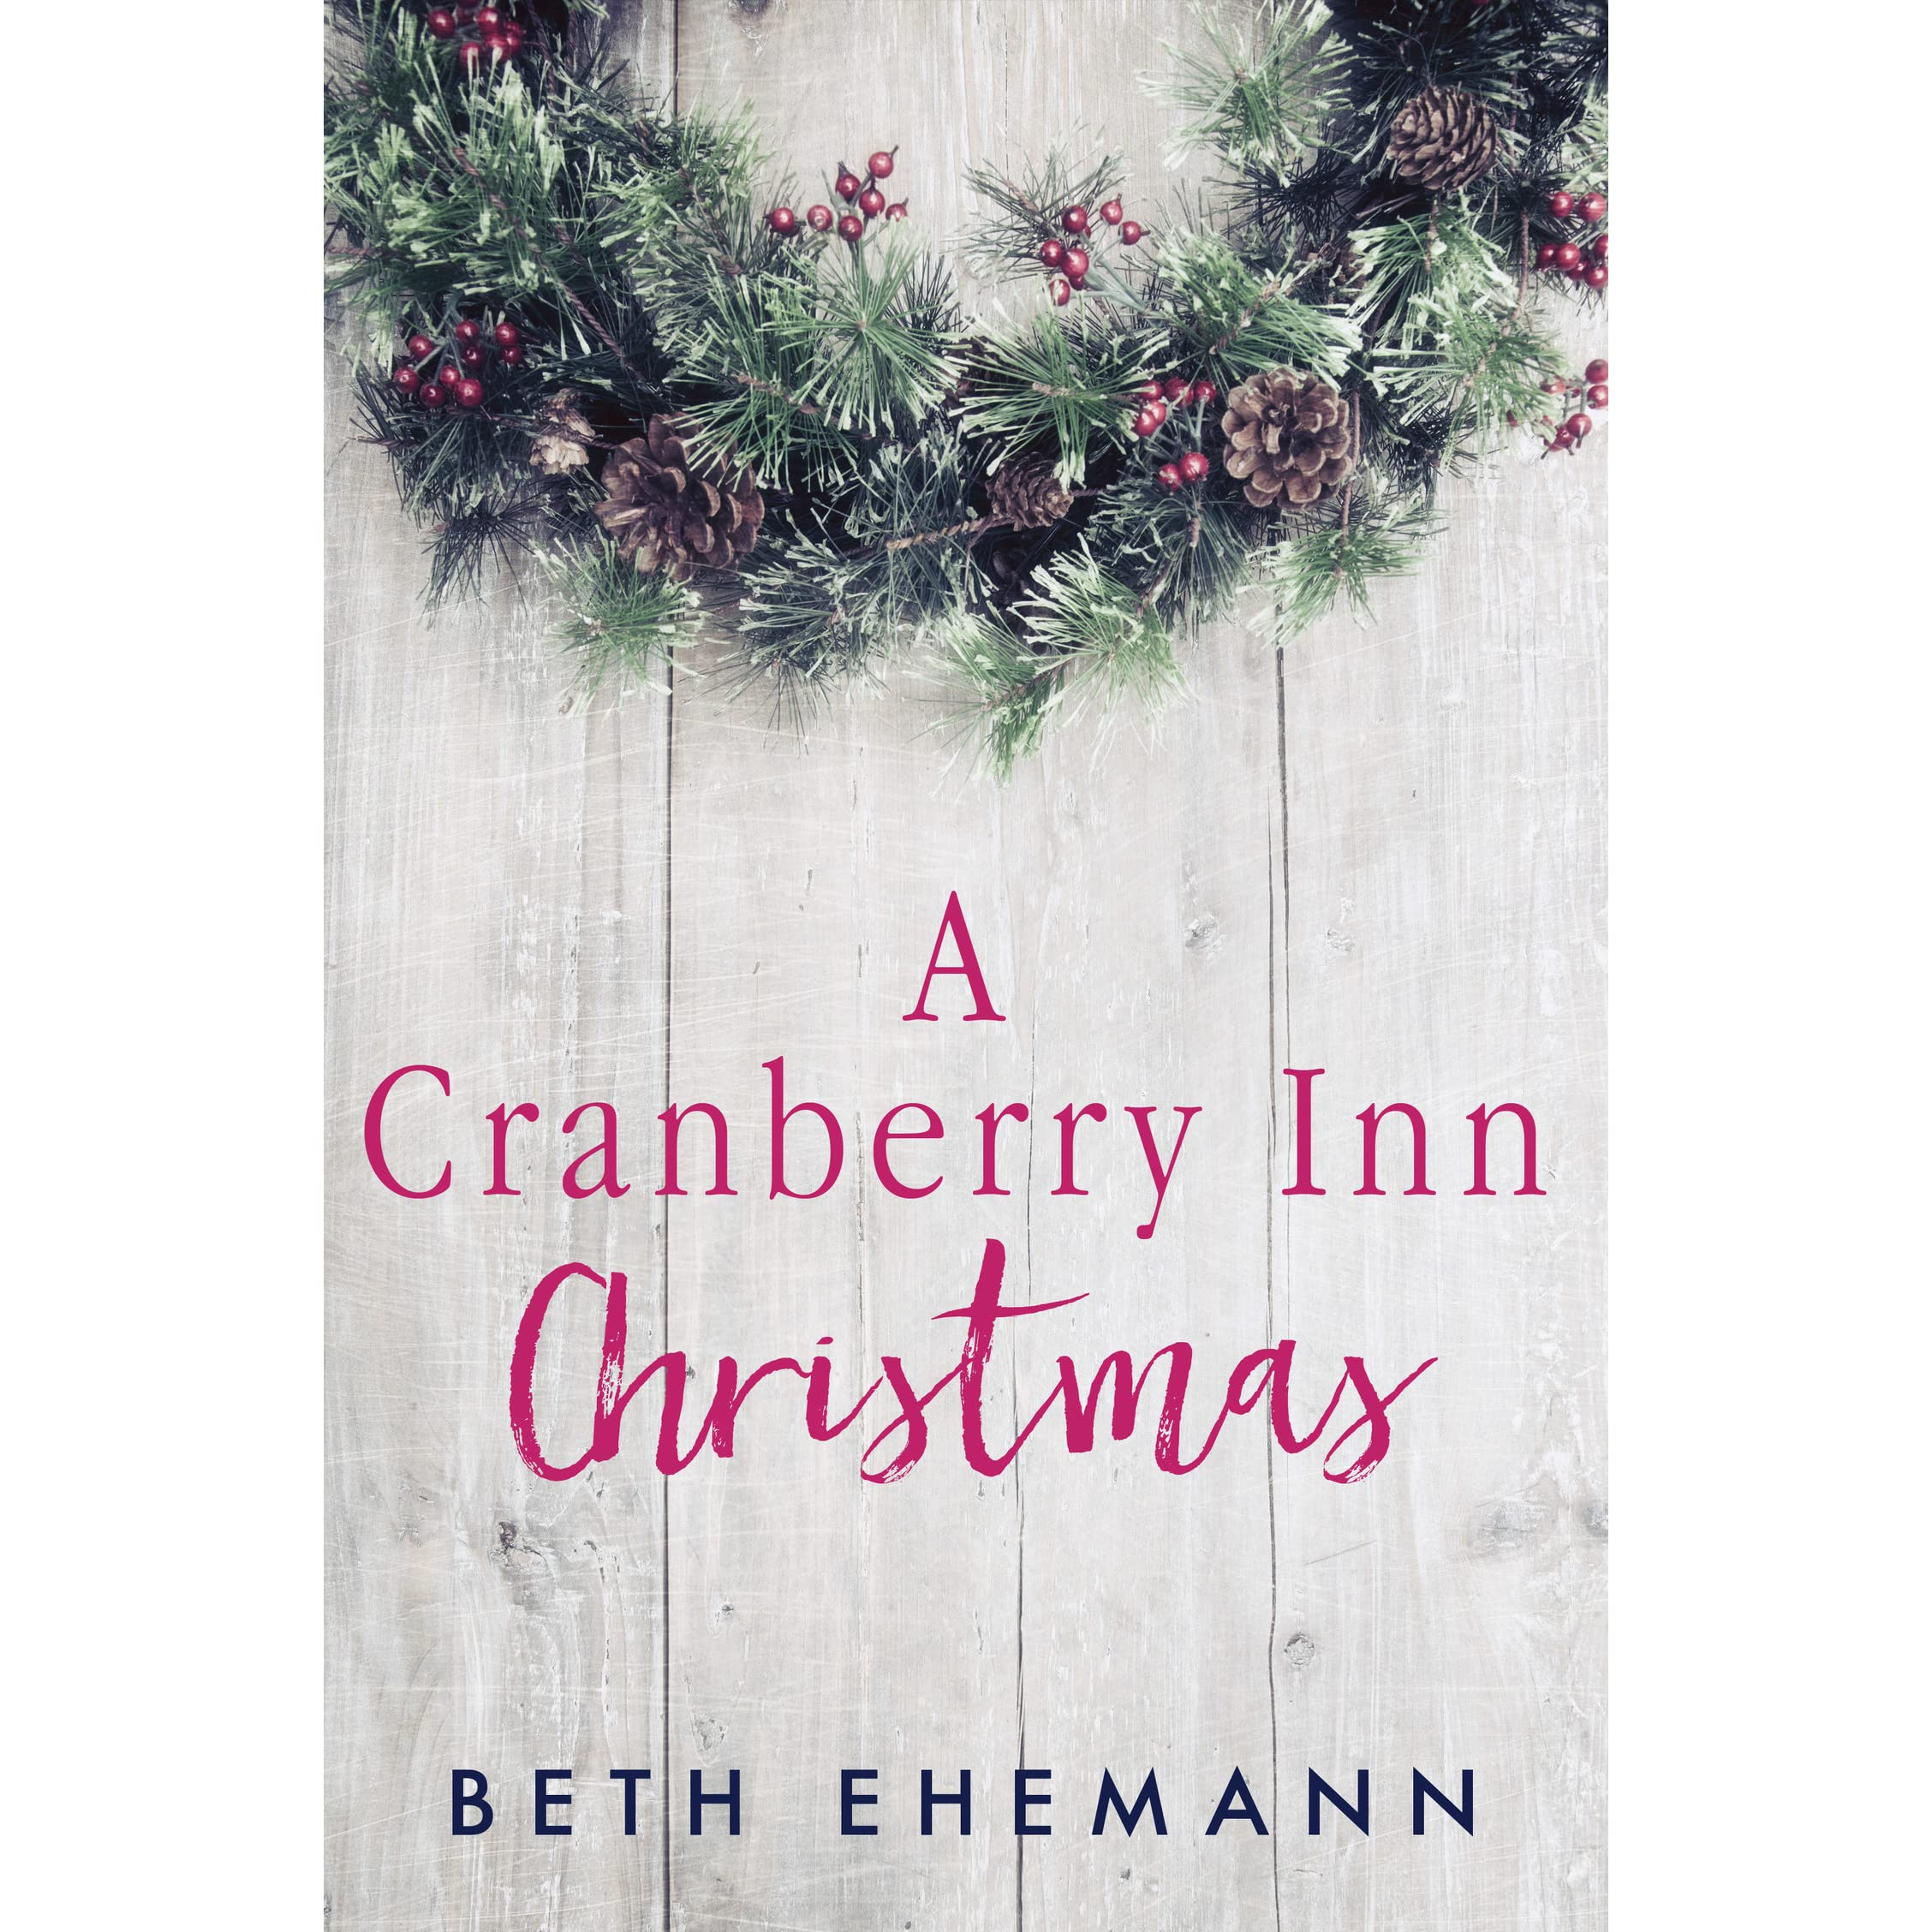 A Cranberry Inn Christmas (Cranberry Inn, #2.75) by Beth Ehemann